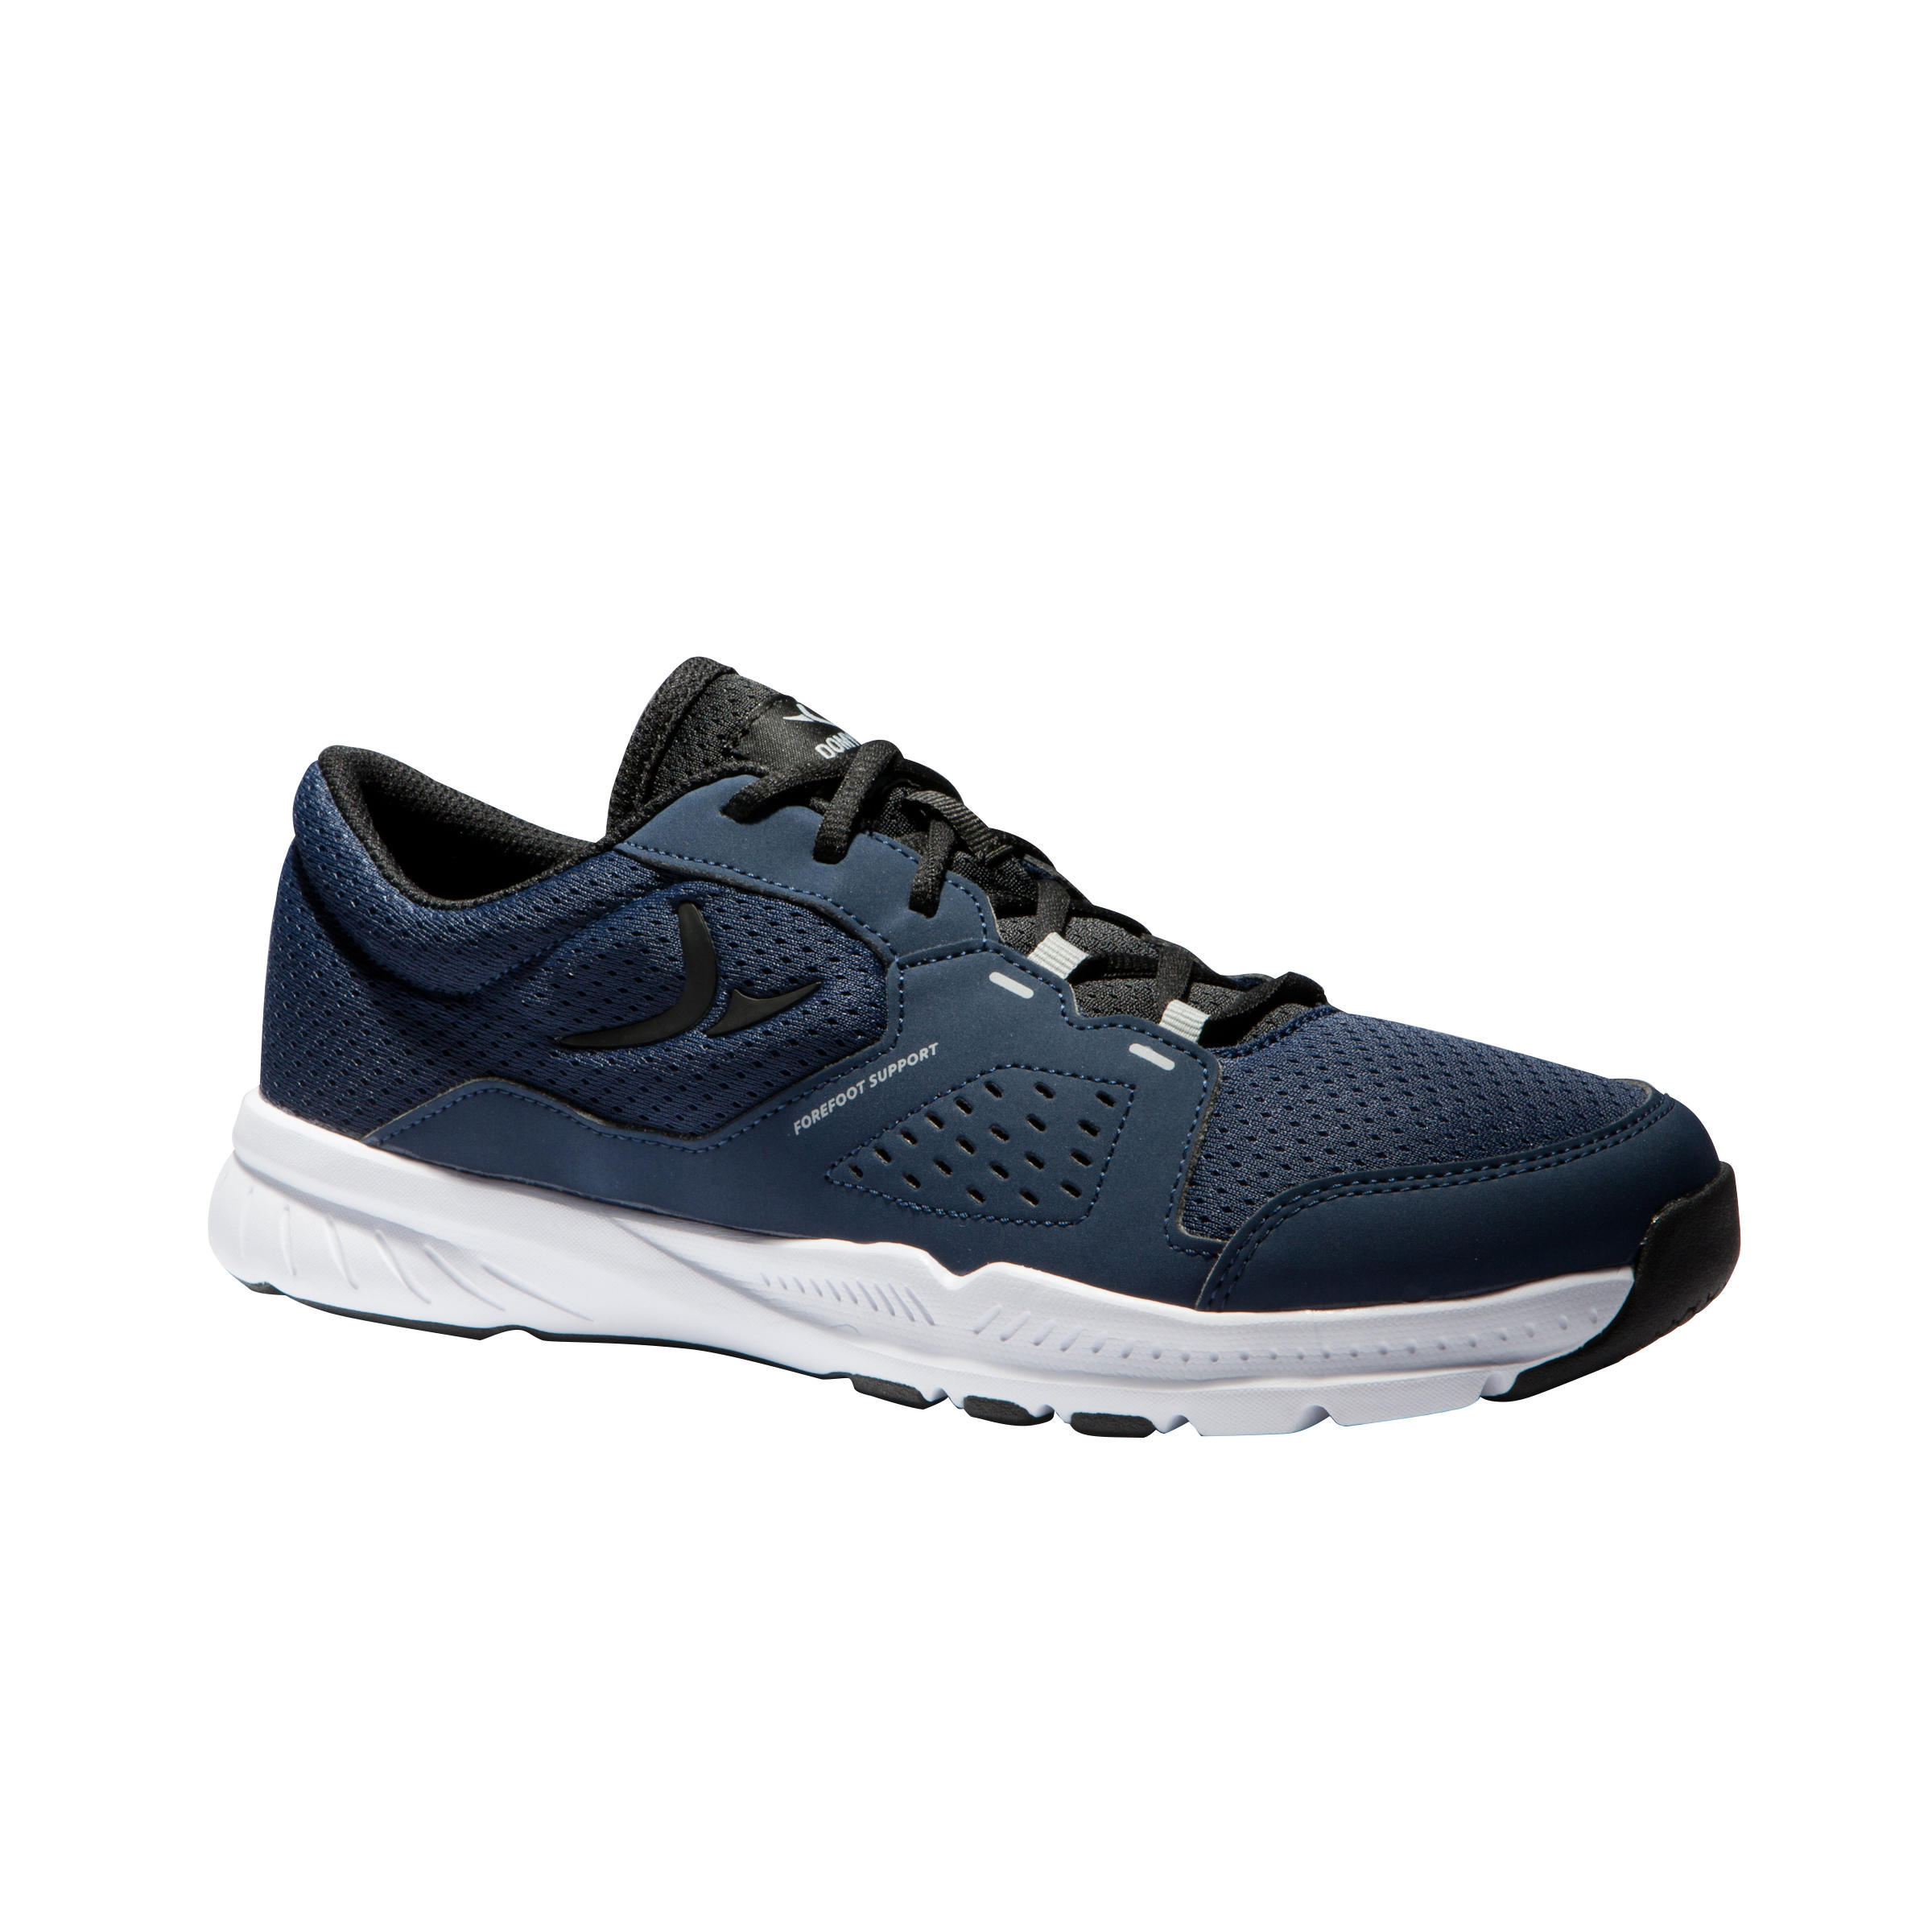 100 Cardio Training Fitness Shoes - Black/Blue